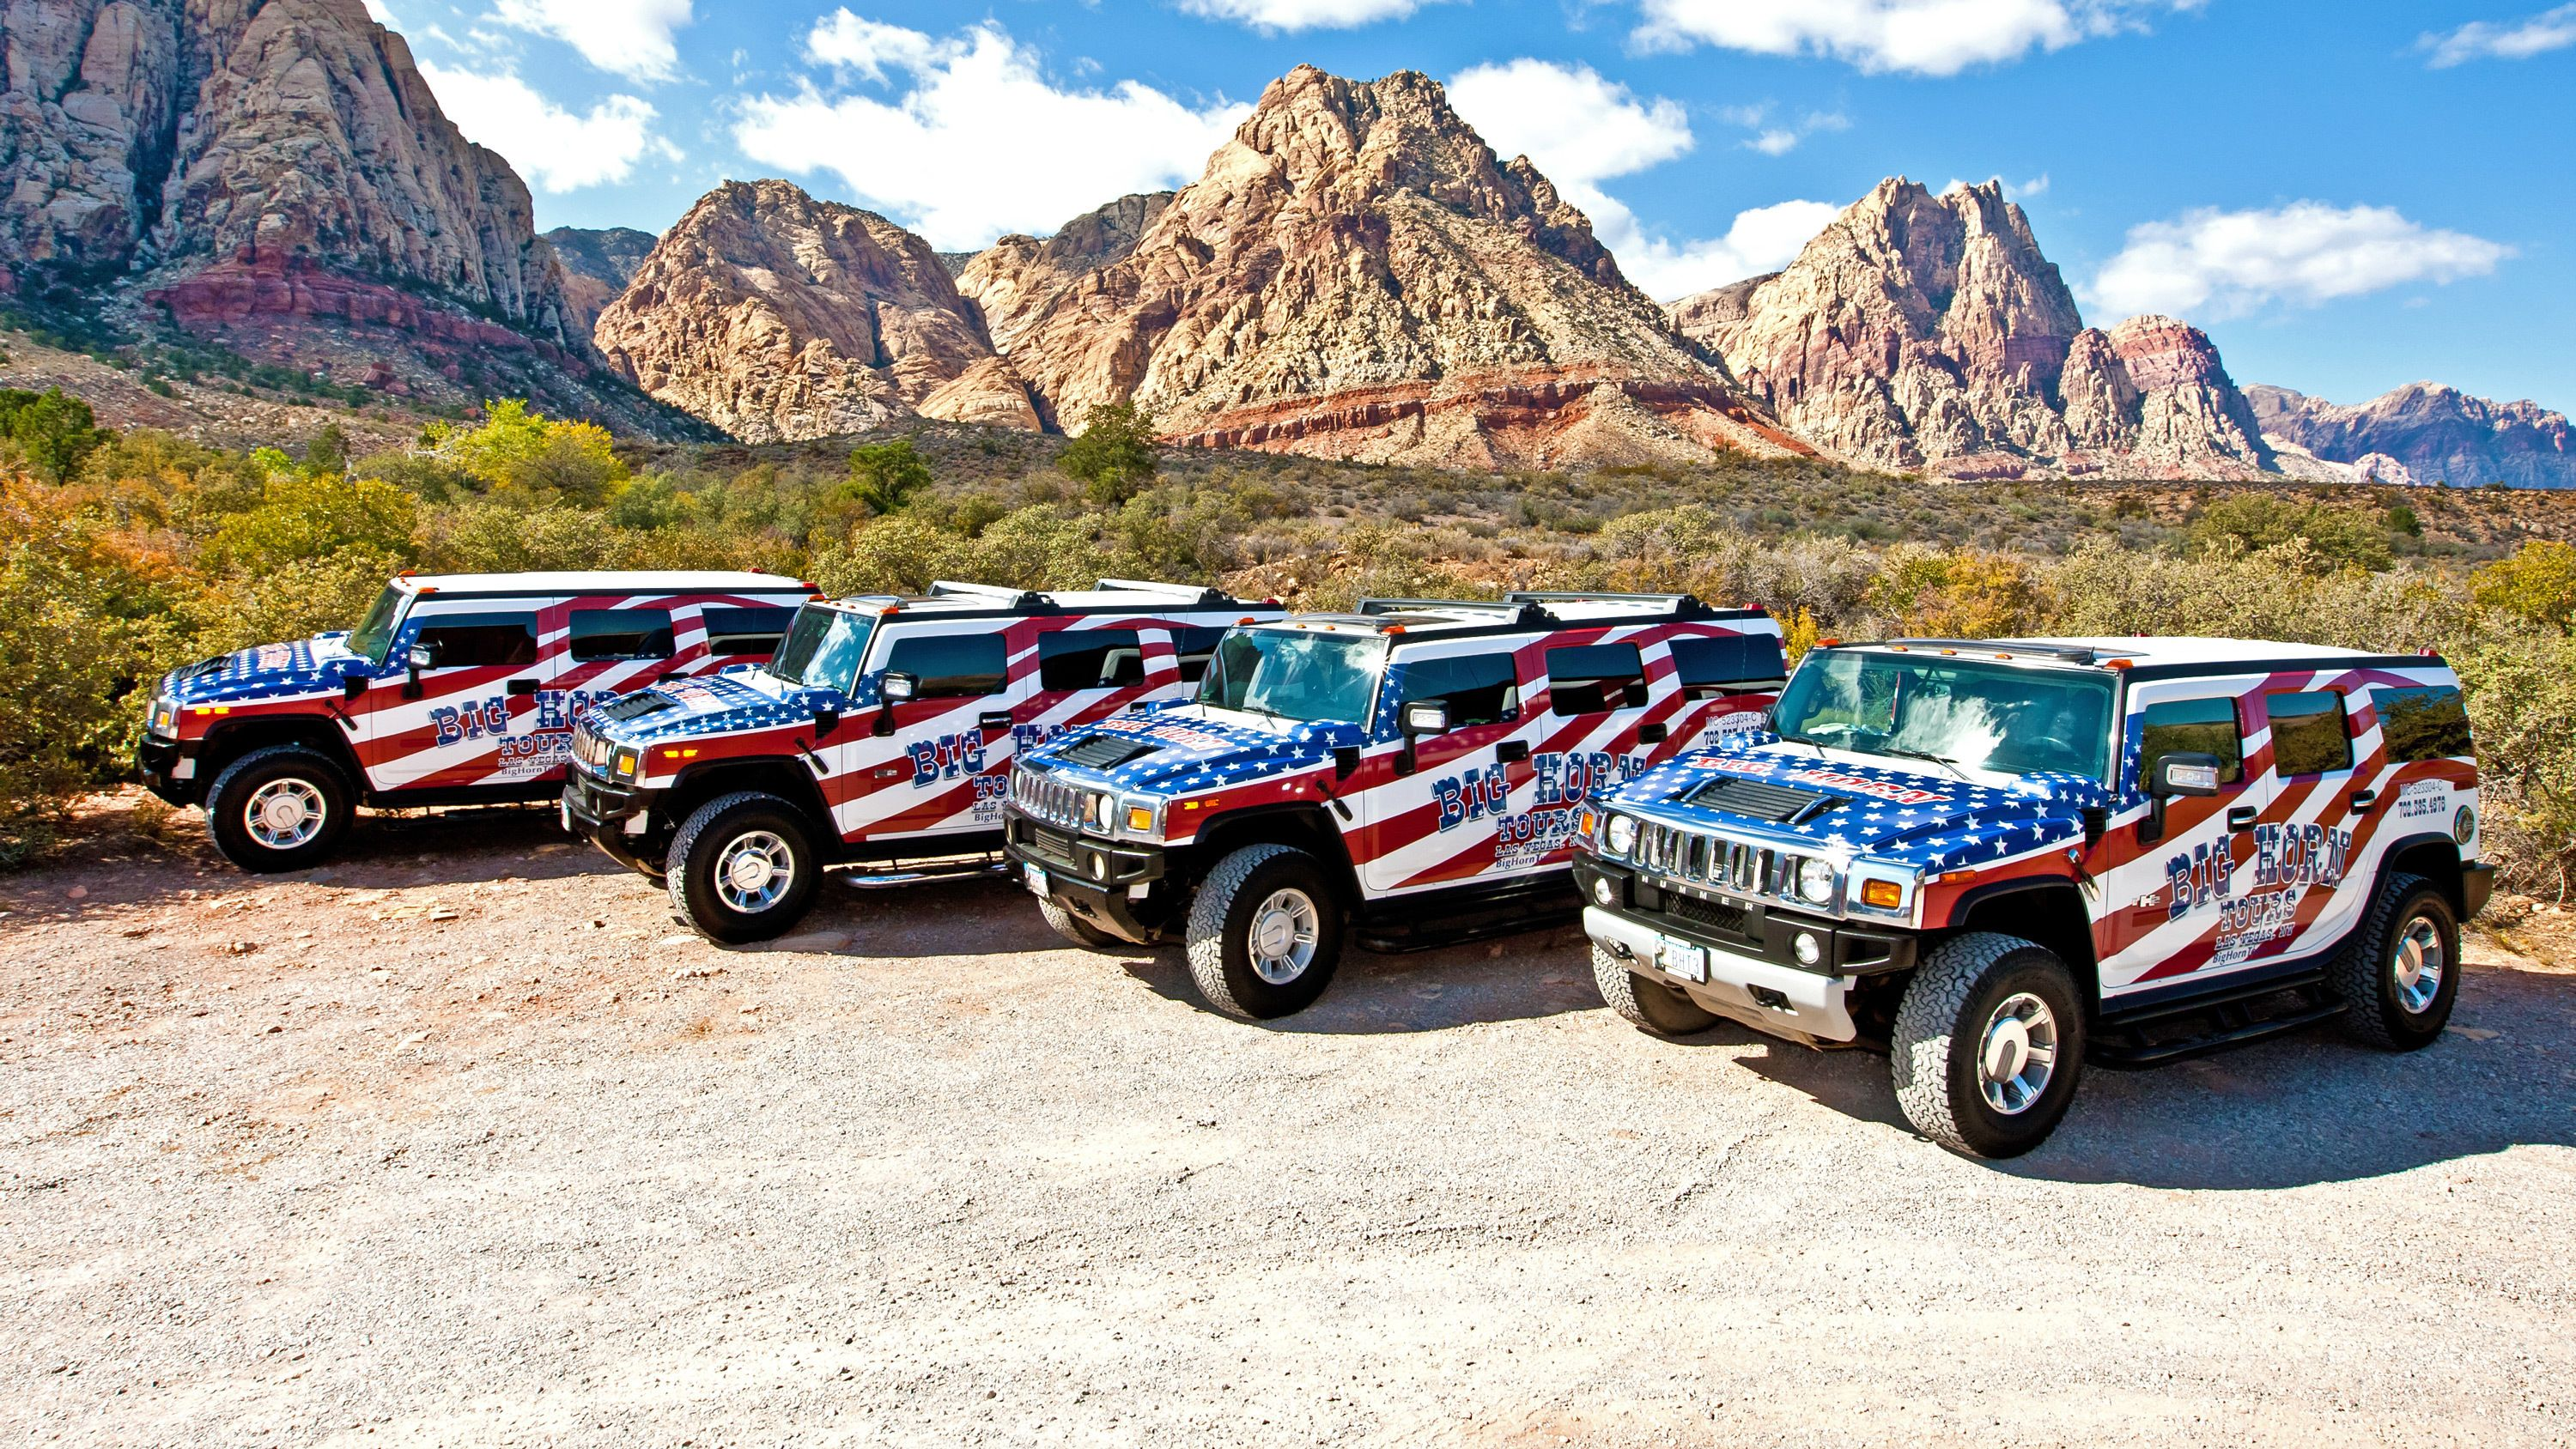 Hummer vehicles covered in patriotic themed decals in Las Vegas